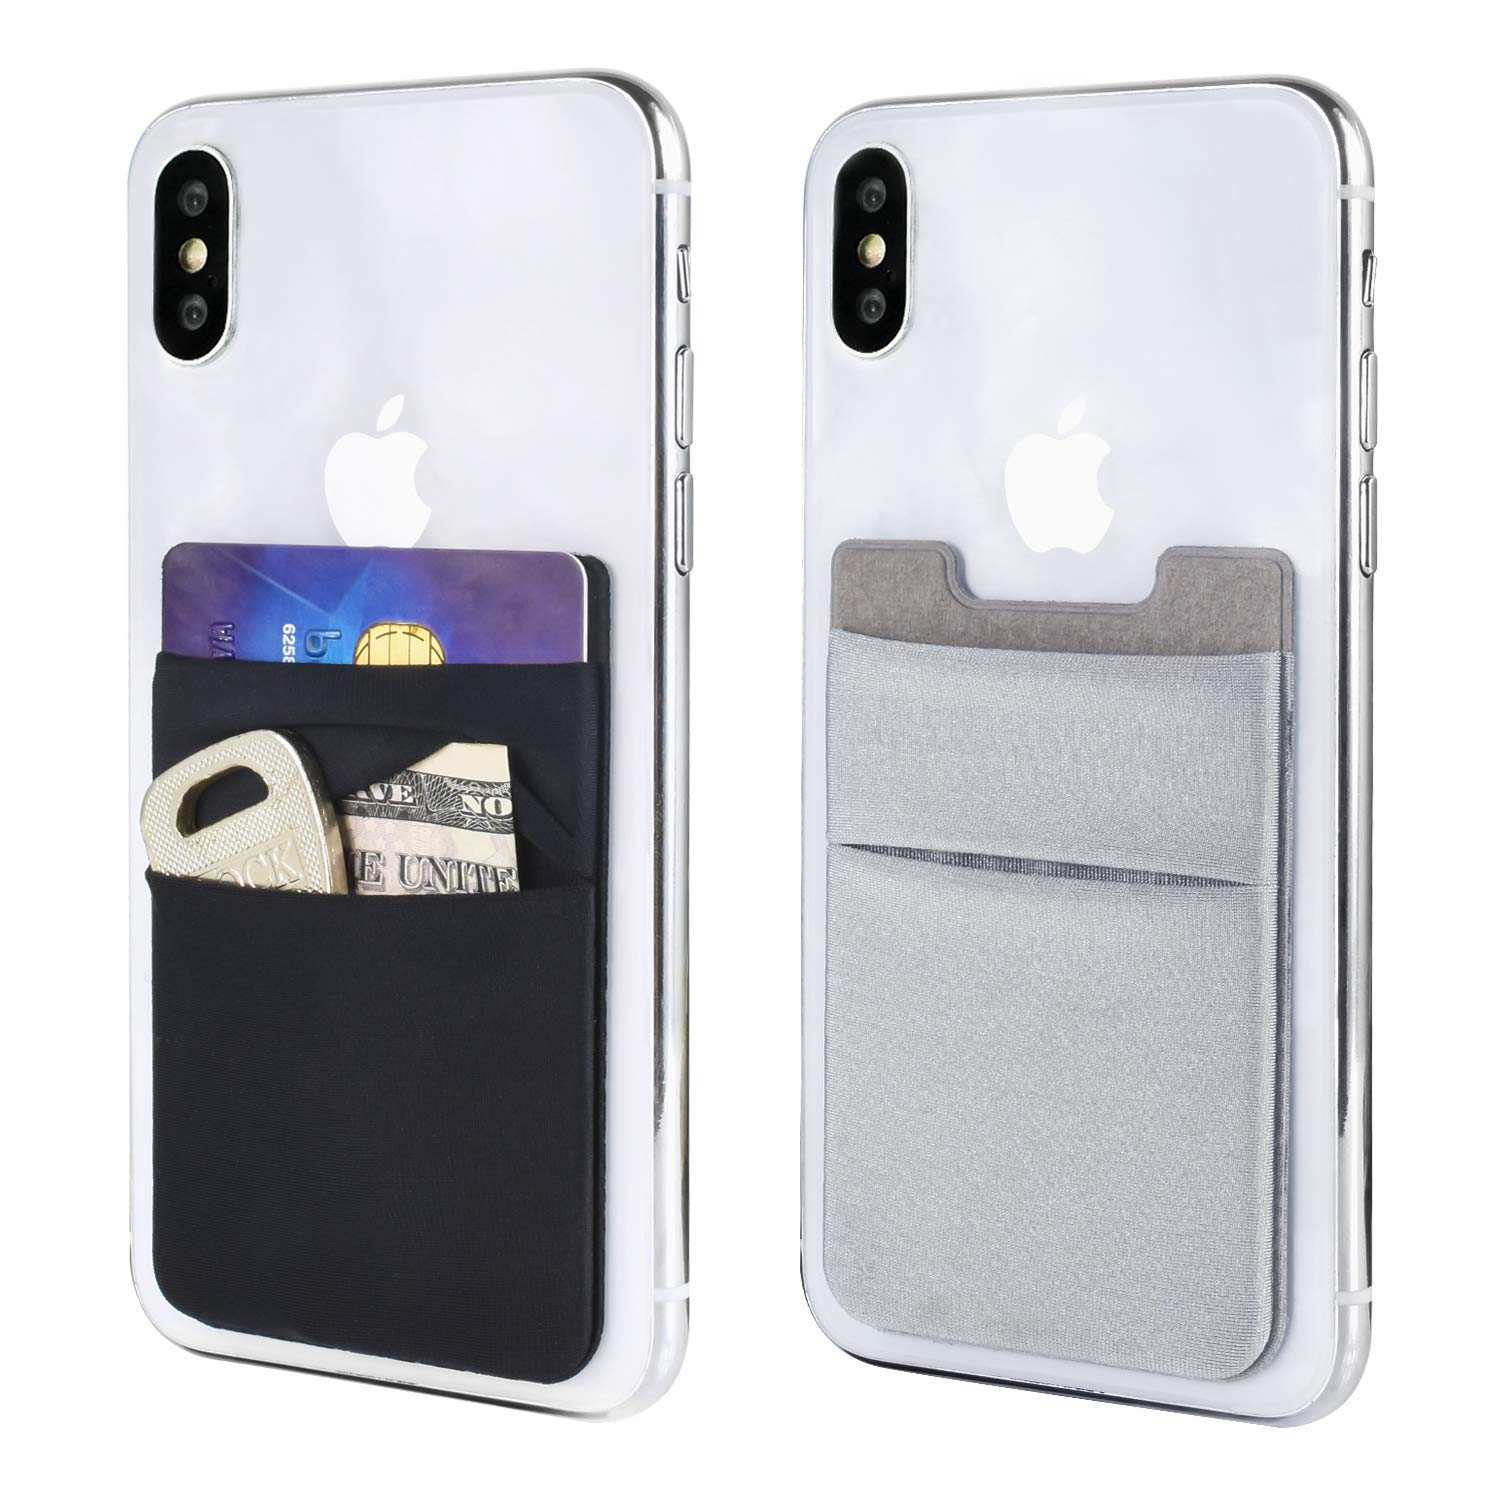 Newseego [2pc] Phone Card Wallet Sticker Stick On Wallet Card Sleeves Stretchy Double Pocket Pouch Slim Self Adhesive Credit Card Holder for All Smartphones ( Black and Grey )